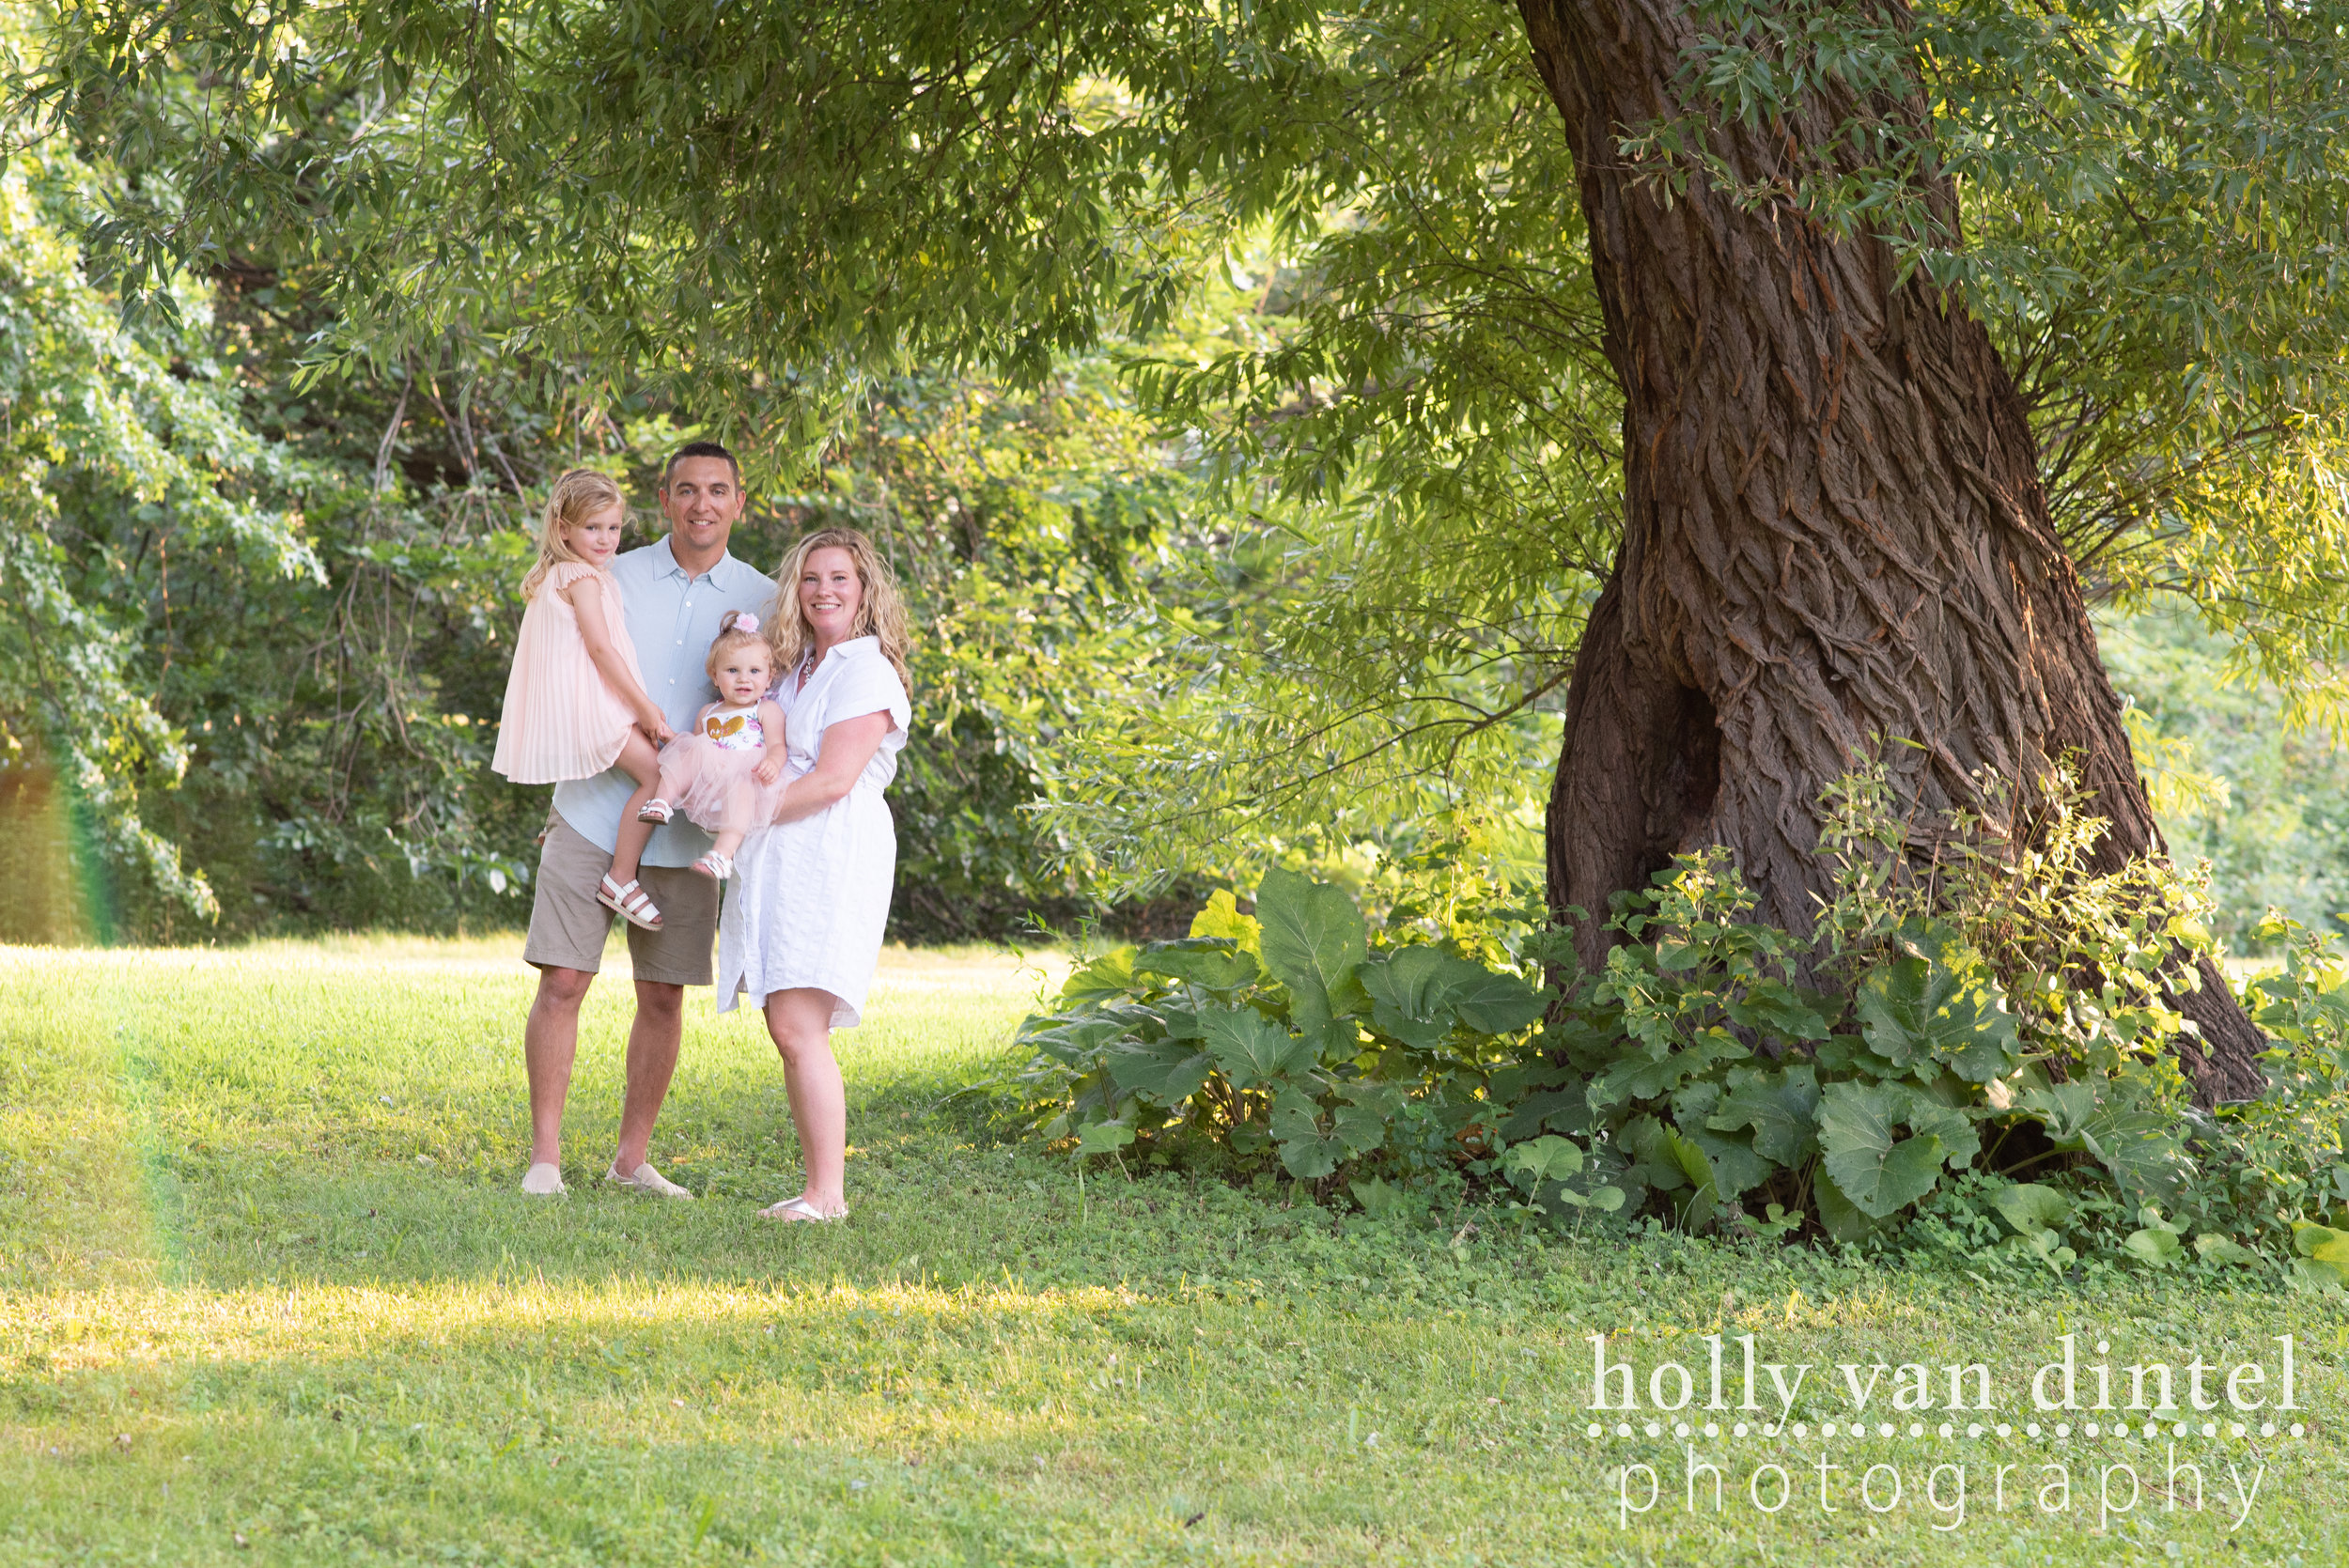 Family with two little girls standing together under a large tree in a park.